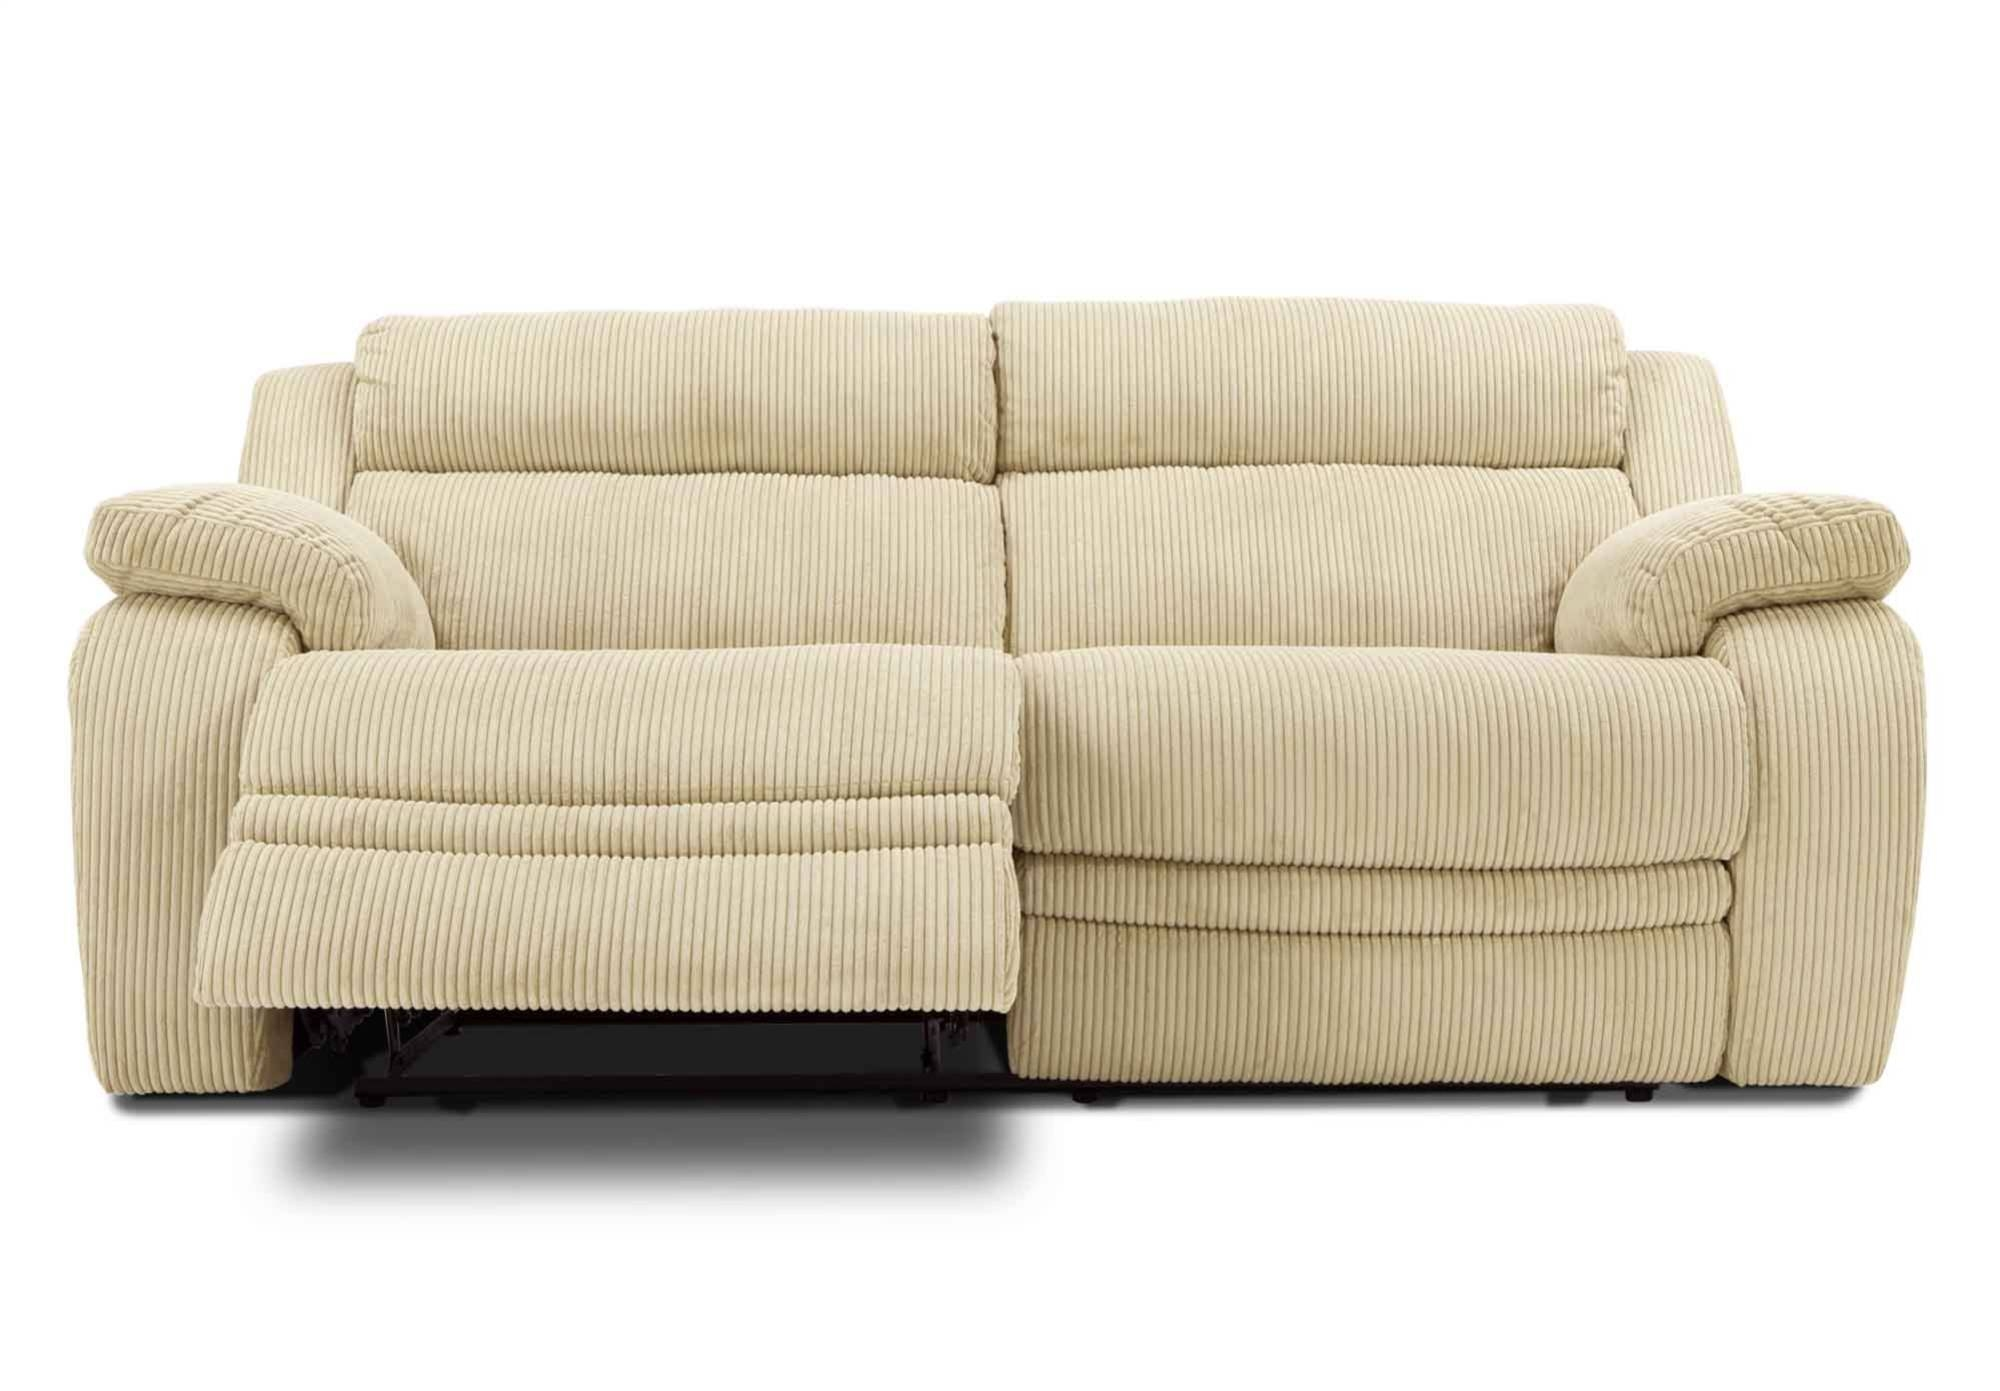 Sofas Center : Sofa With Recliner Chesterfield Fabric Breathtaking with regard to Chesterfield Recliners (Image 25 of 30)